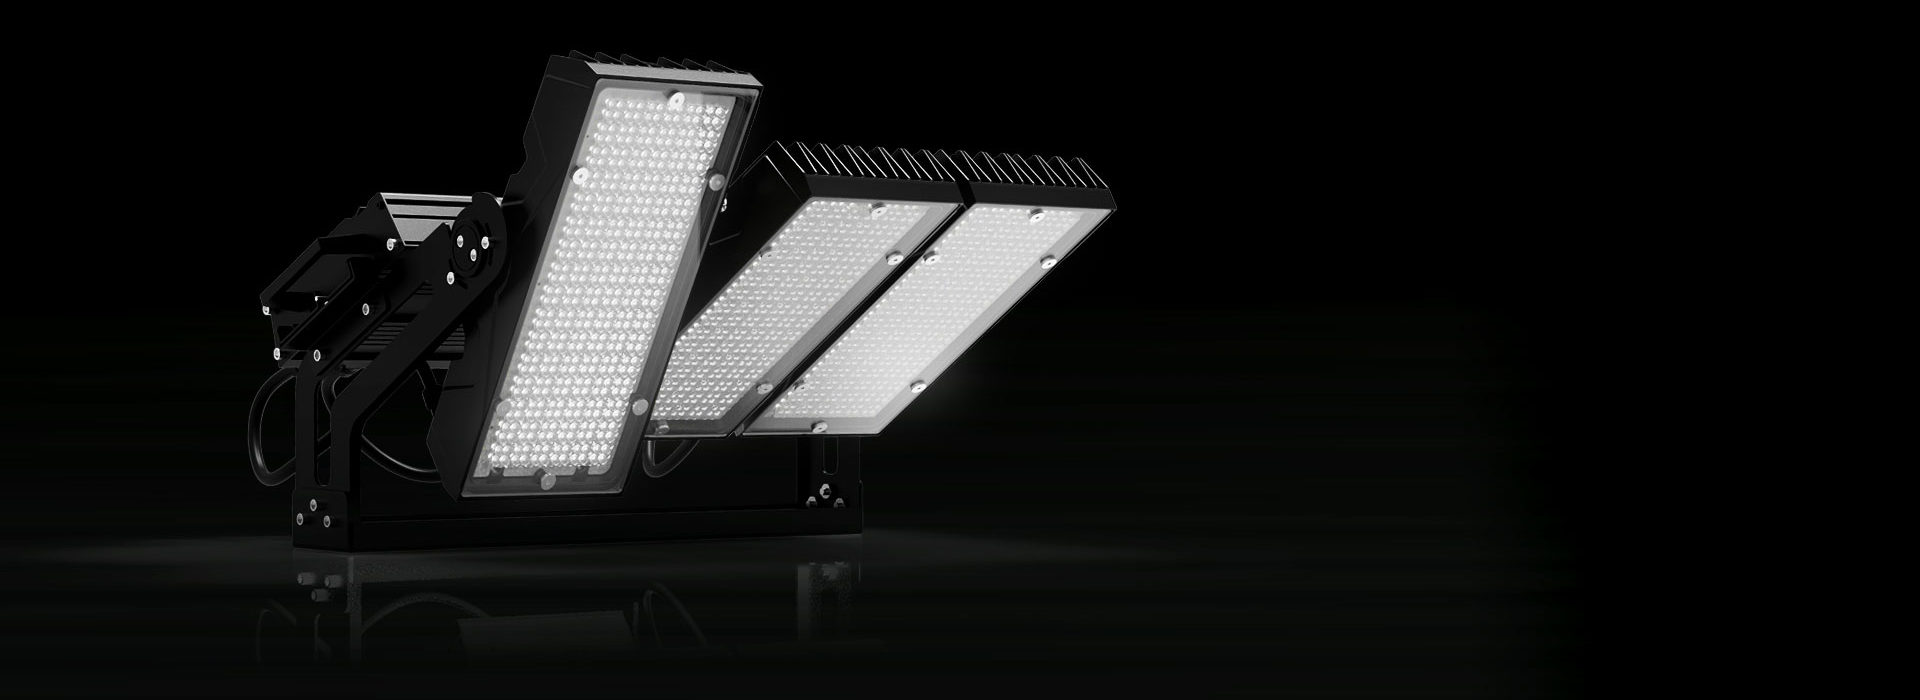 HiMast-led-flood-light